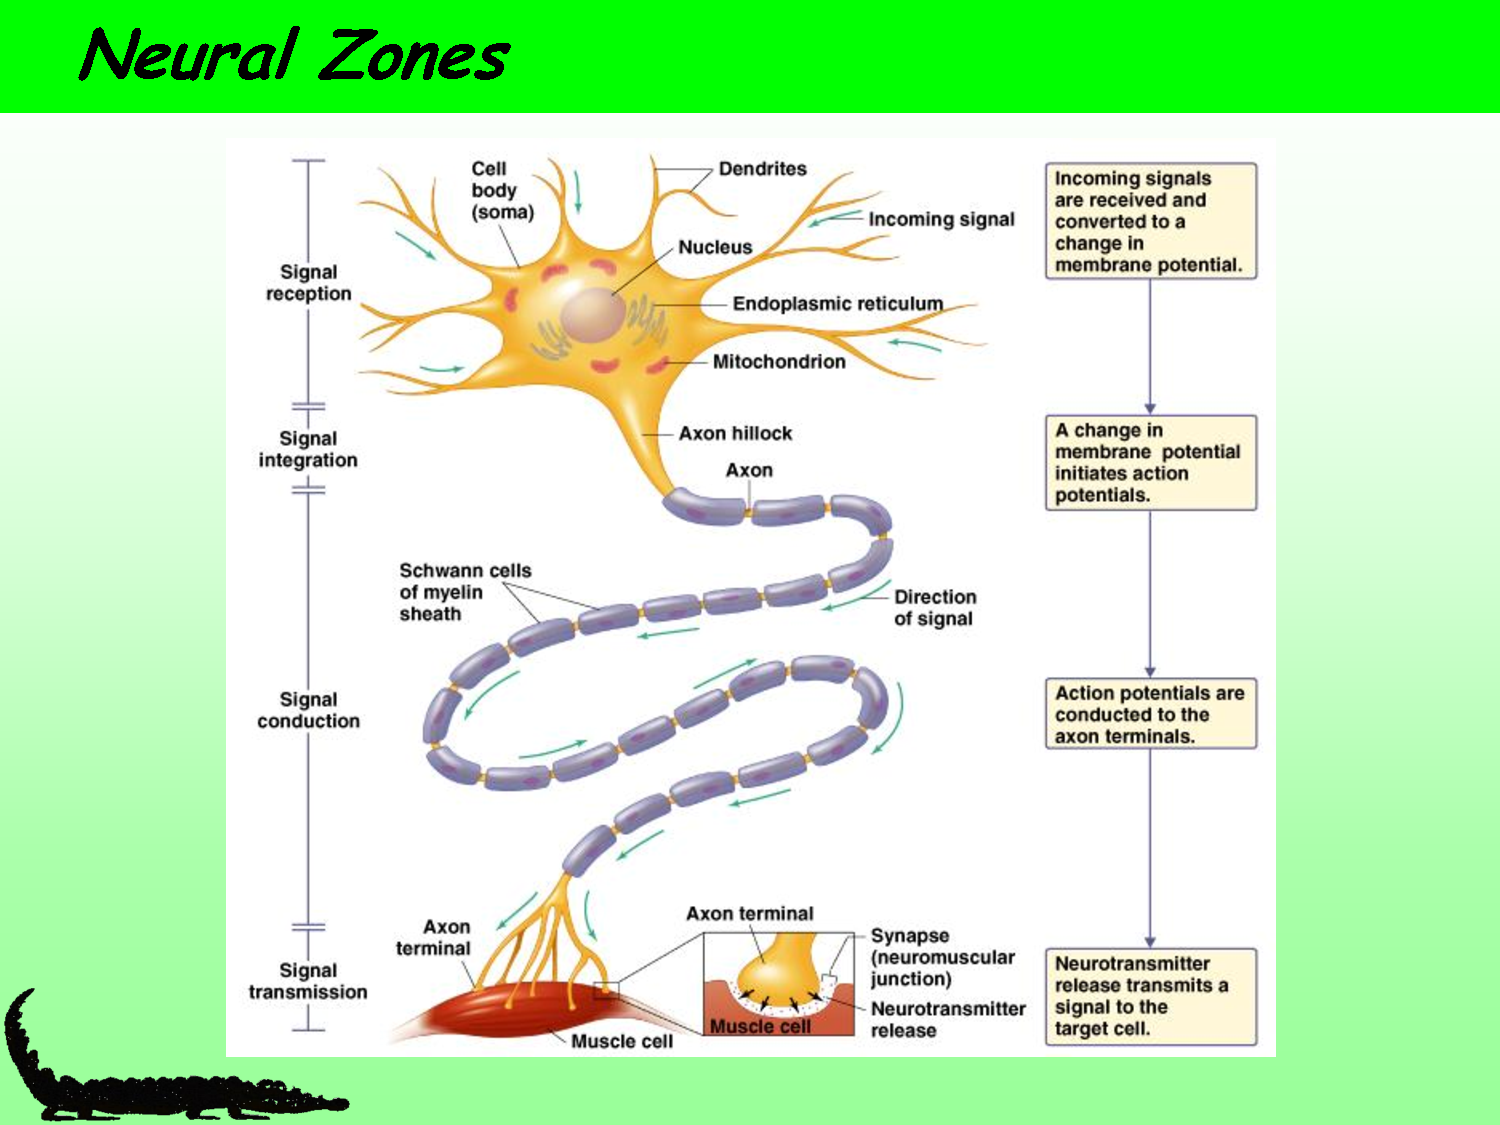 Motor neuron diagram neuron structure and function4 motor neuron diagram neuron structure and function4 ccuart Choice Image